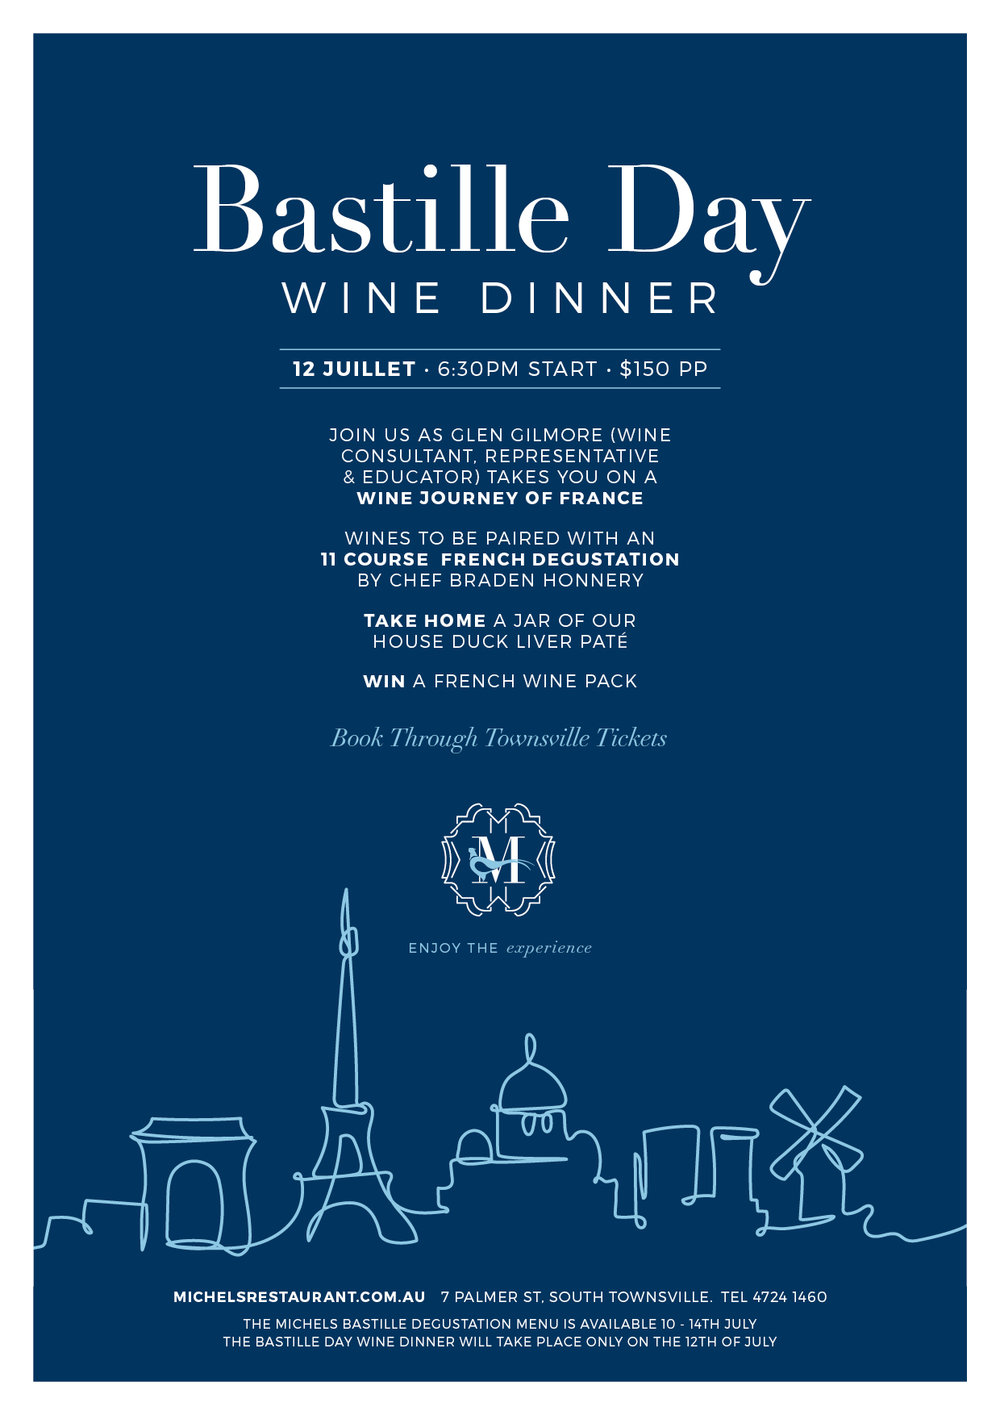 Michels_Bastille Day Wine Dinner_A4.jpg